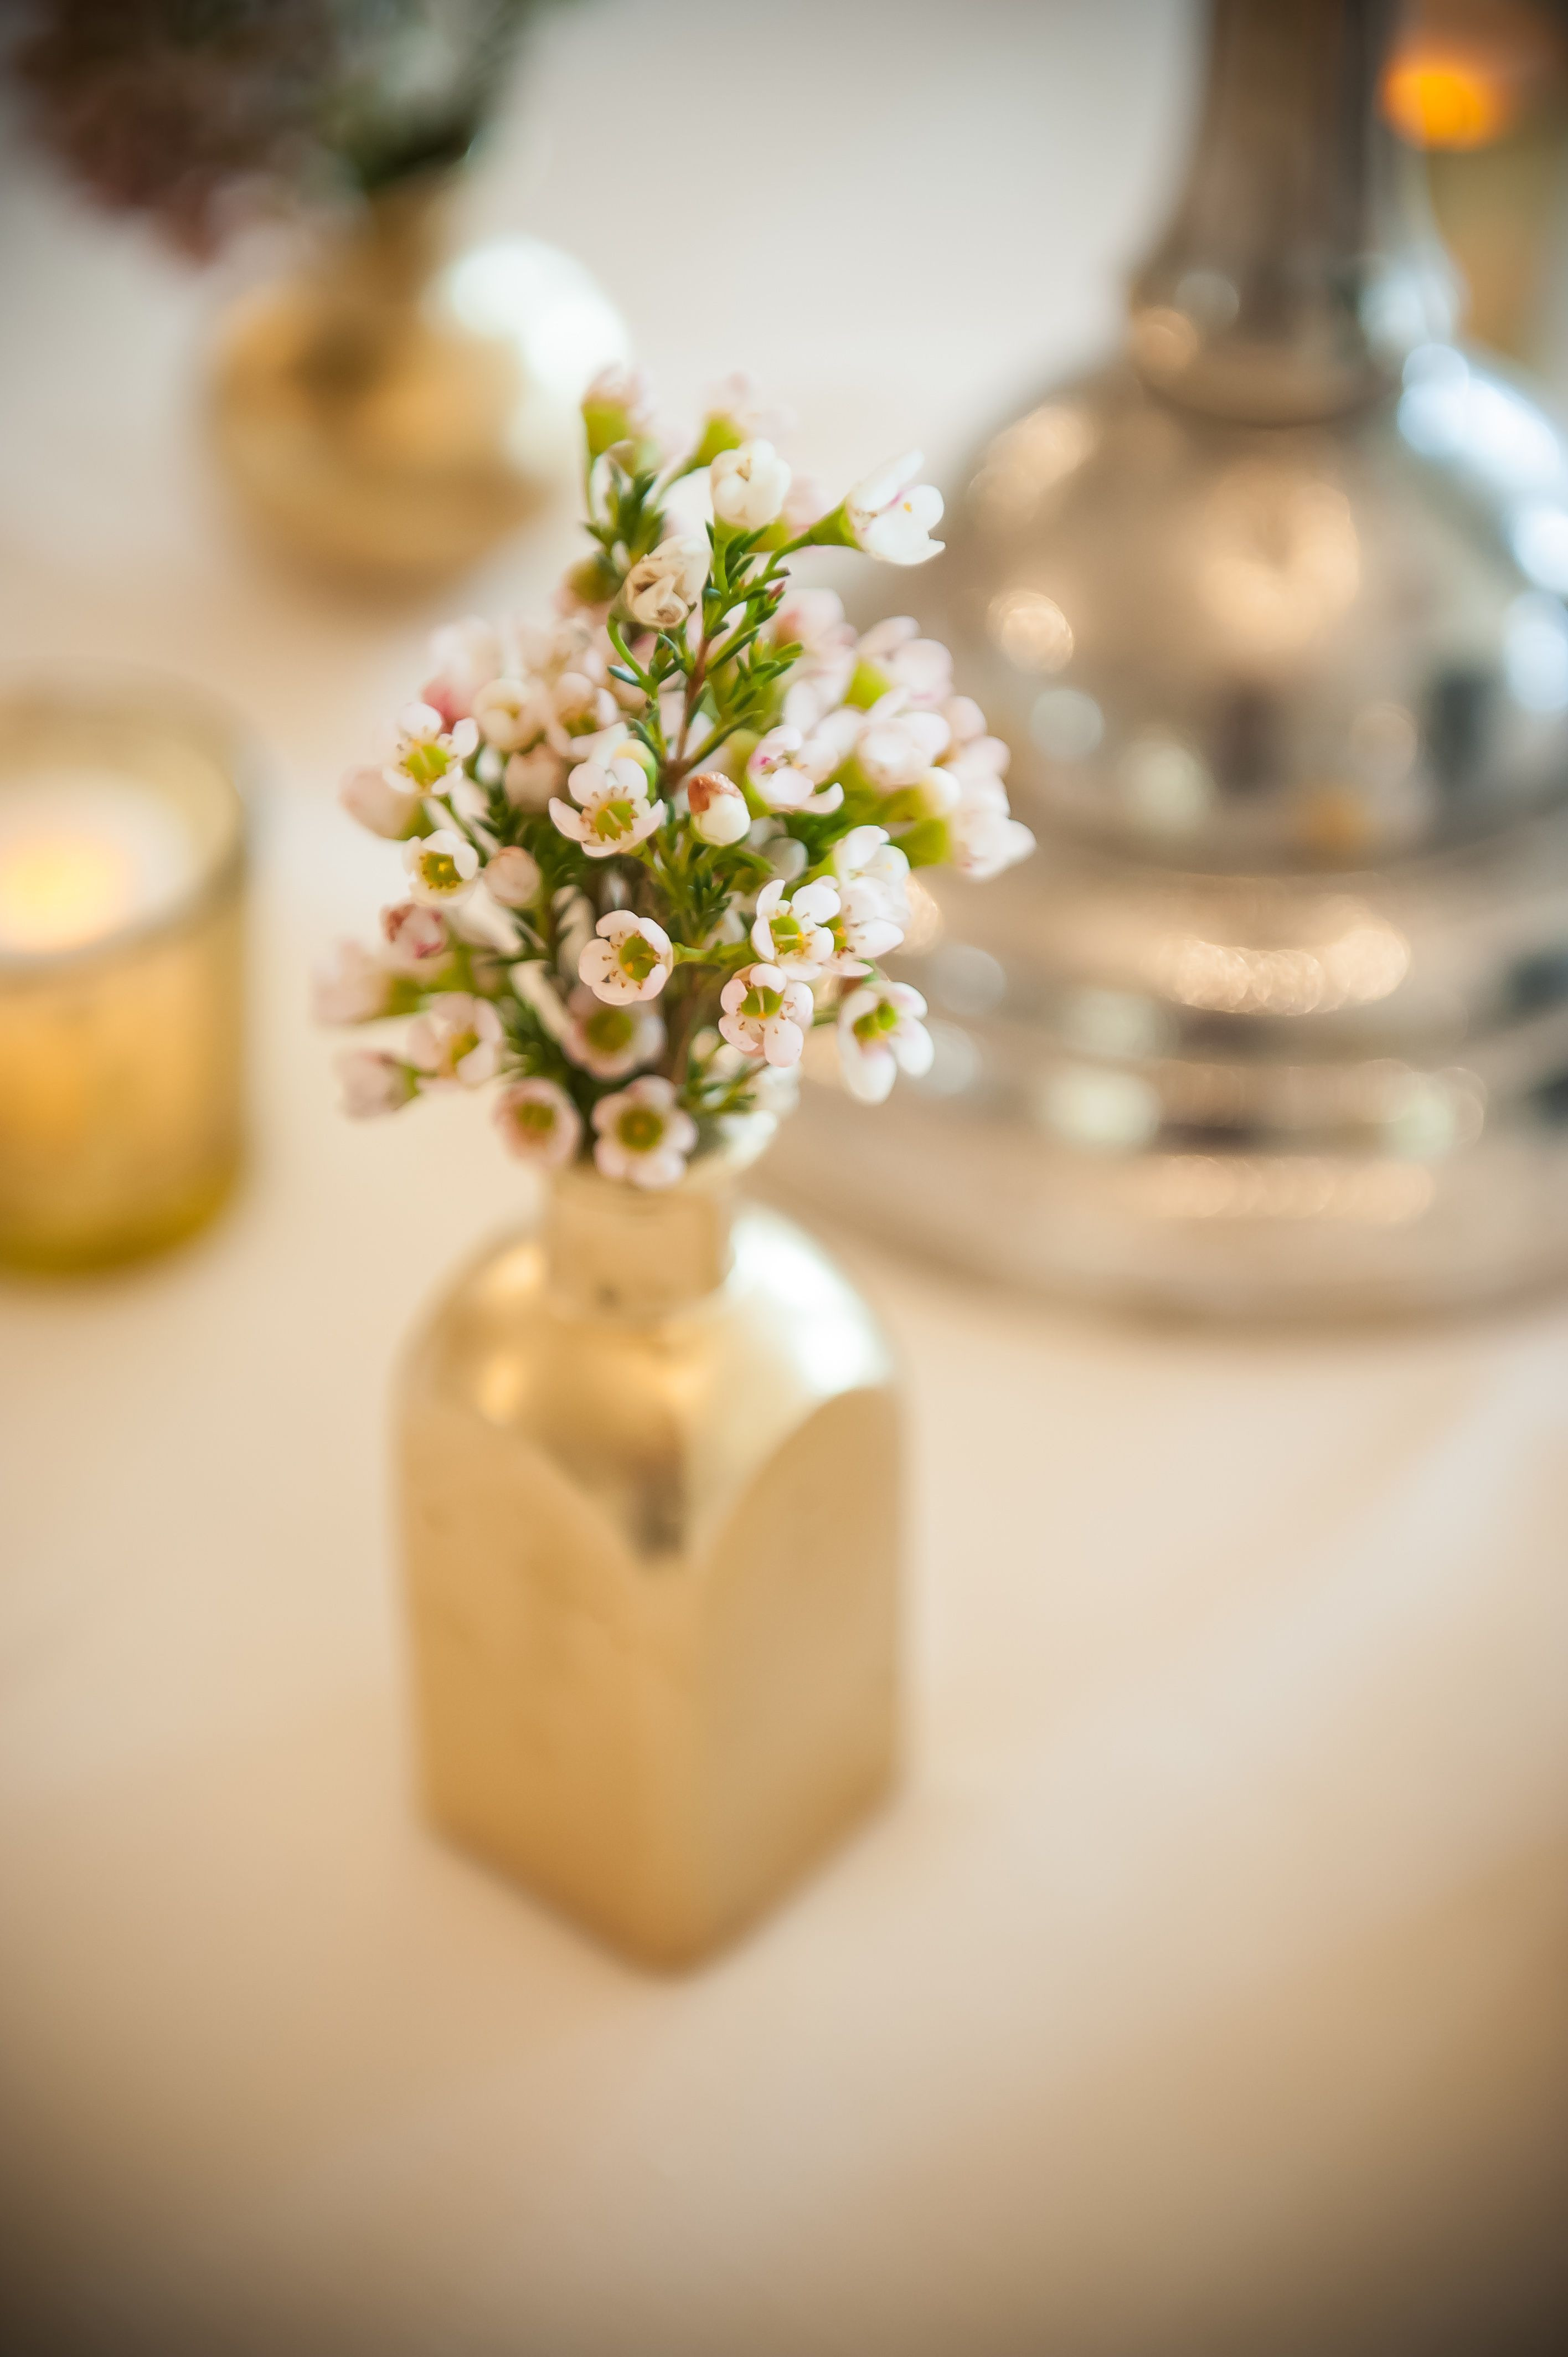 13 attractive Little Flower Vases 2021 free download little flower vases of how about little gold bud vases with white waxflowers for the in how about little gold bud vases with white waxflowers for the cocktail tables www